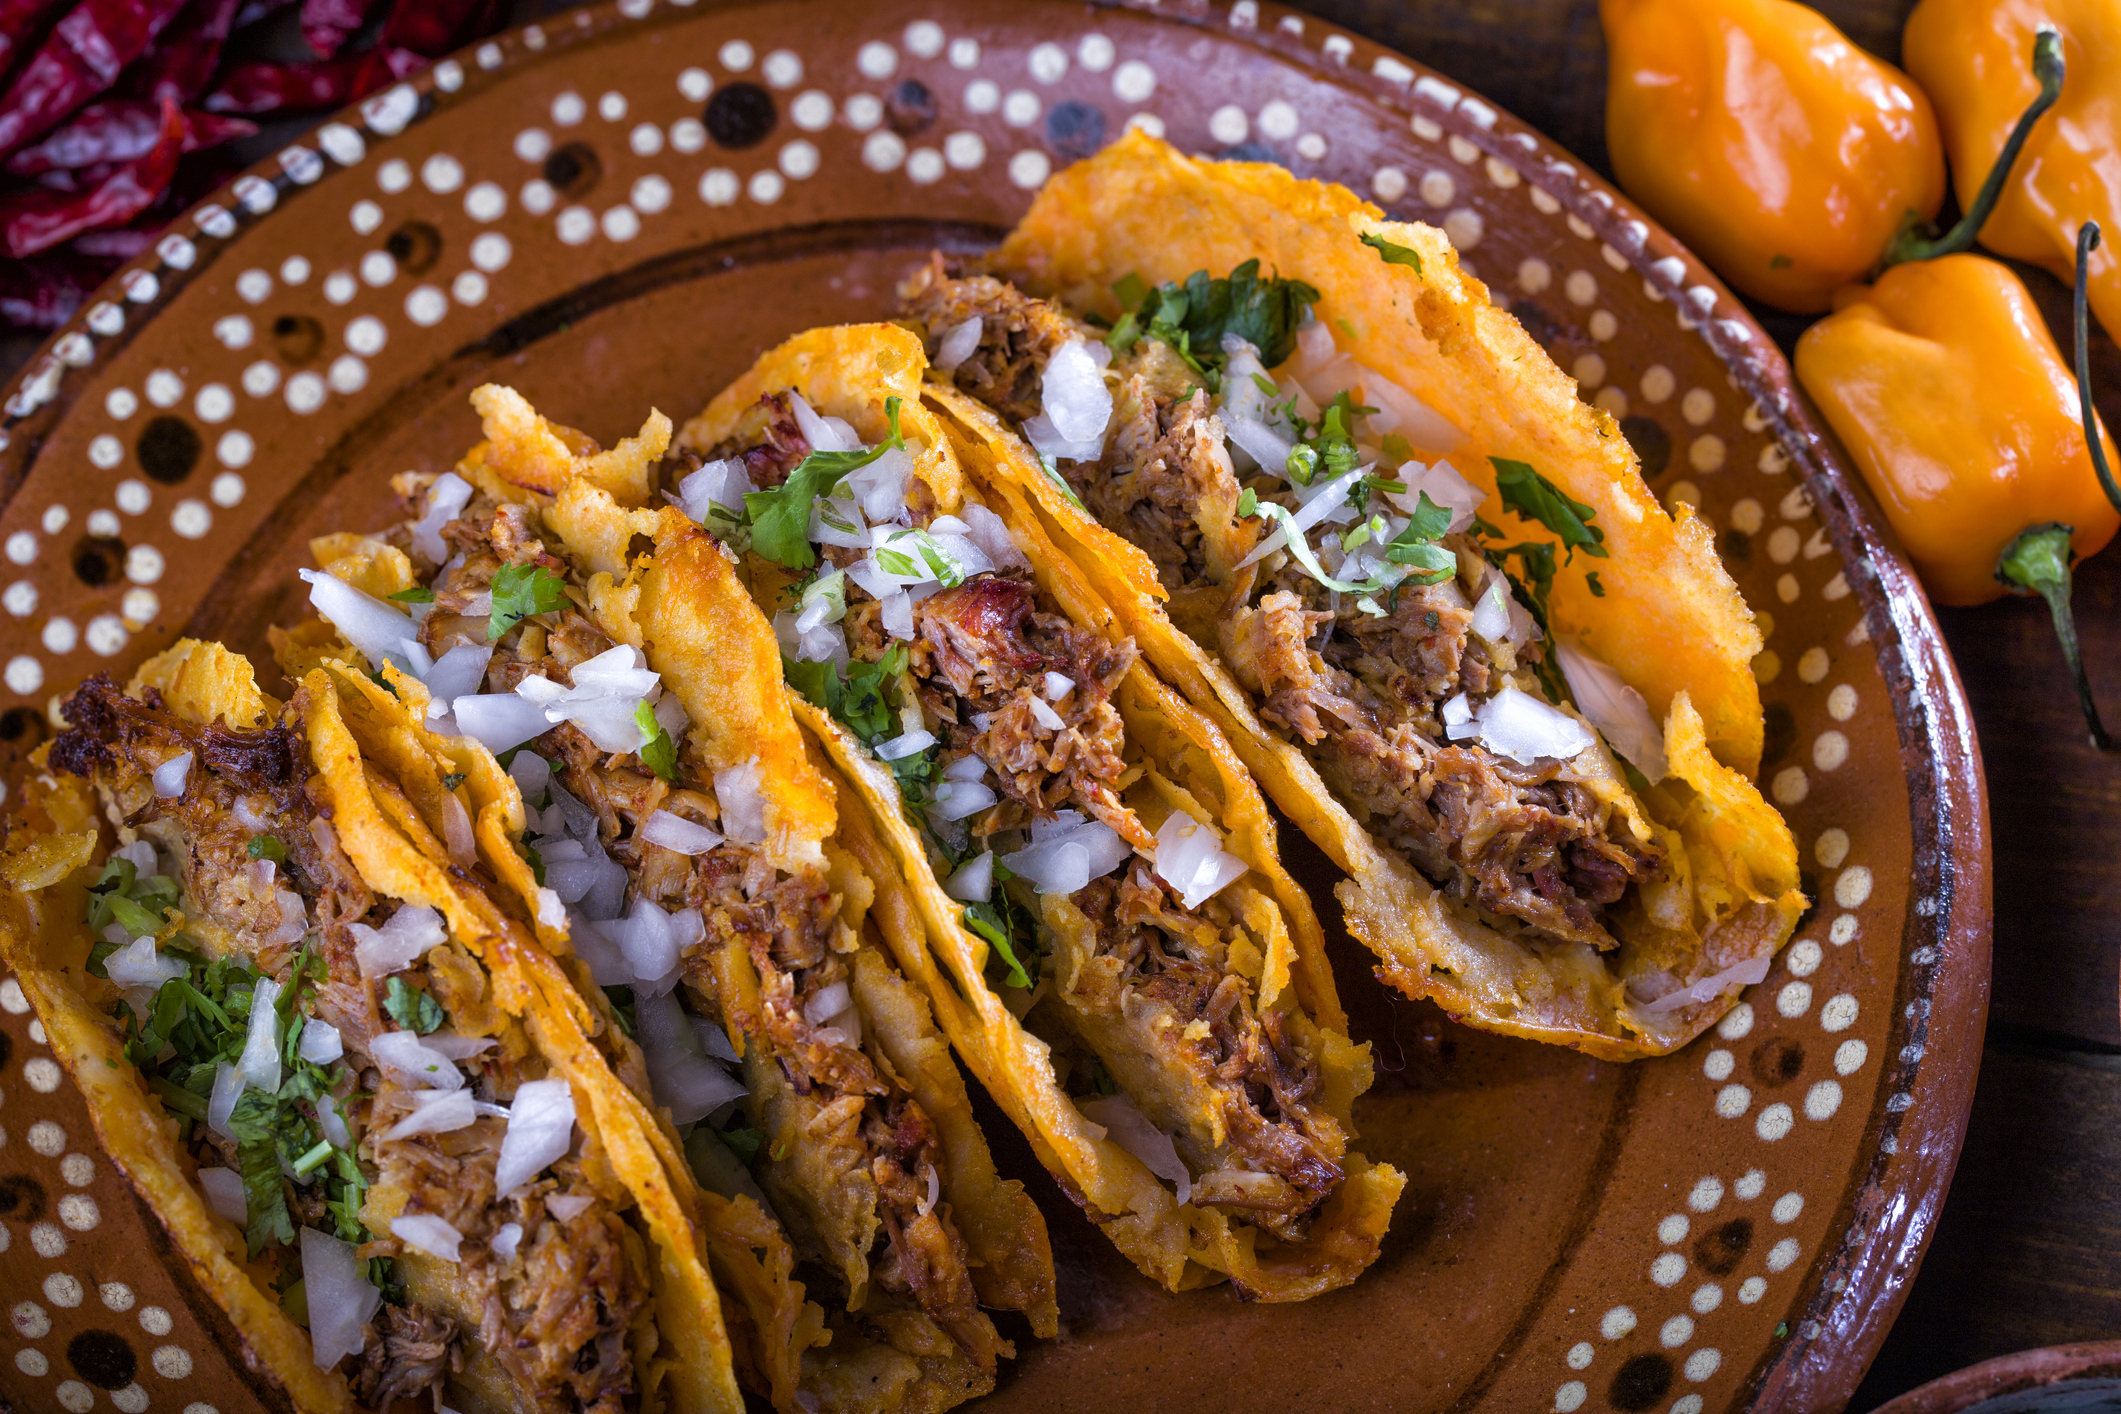 Restaurants Are Giving Free & Discounted Tacos on National Taco Day